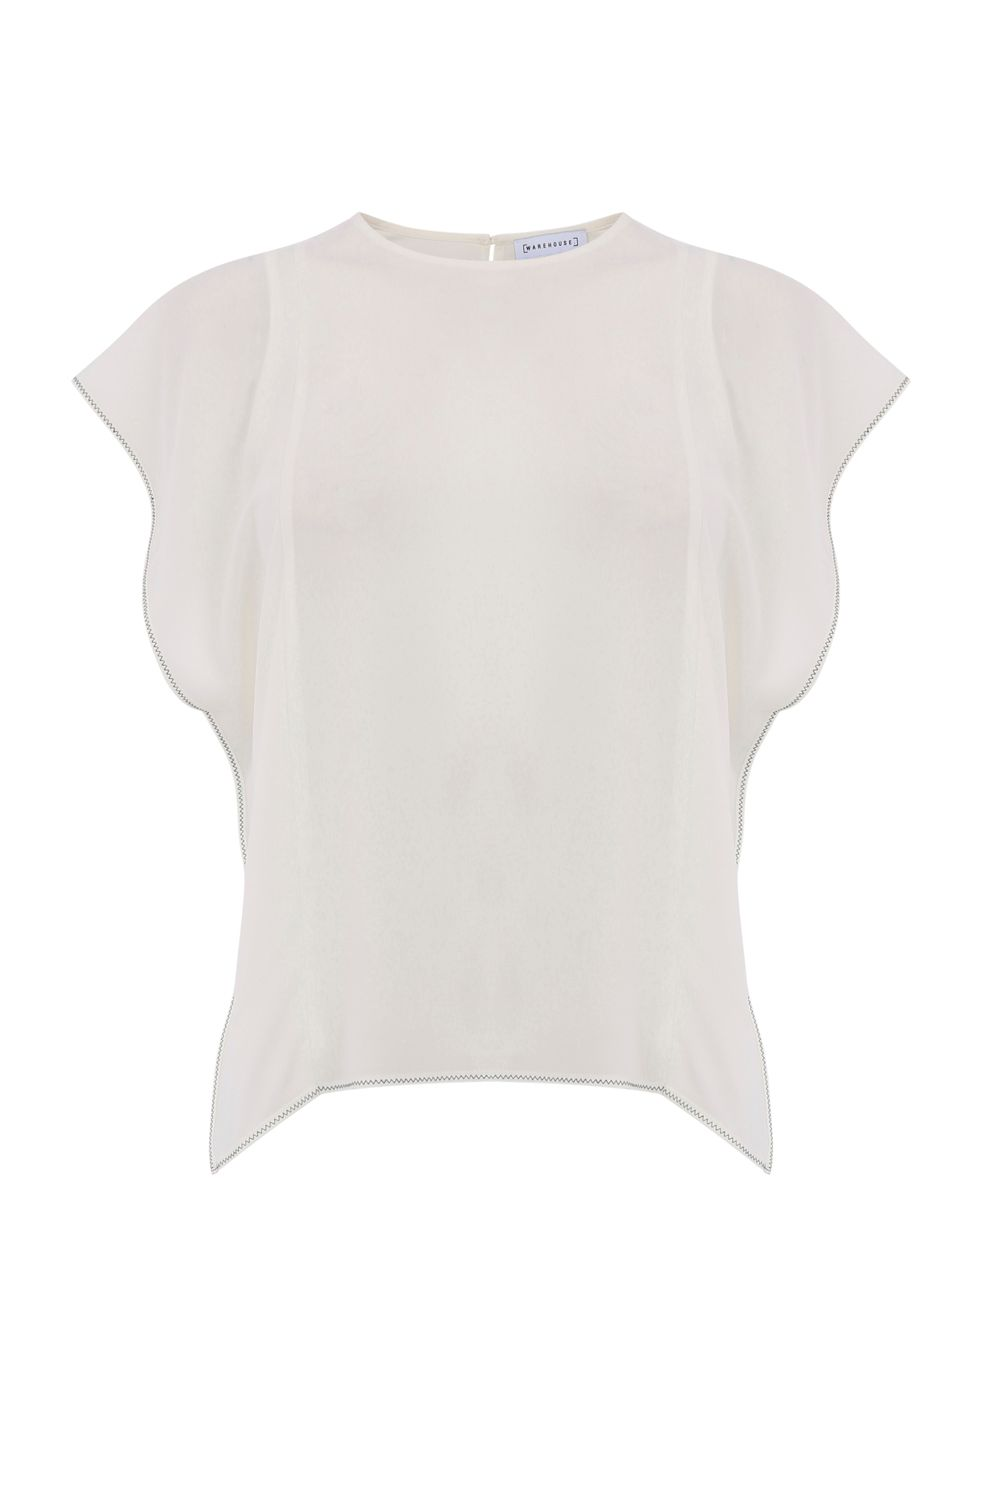 Warehouse Ruffle Sleeve Top, Cream